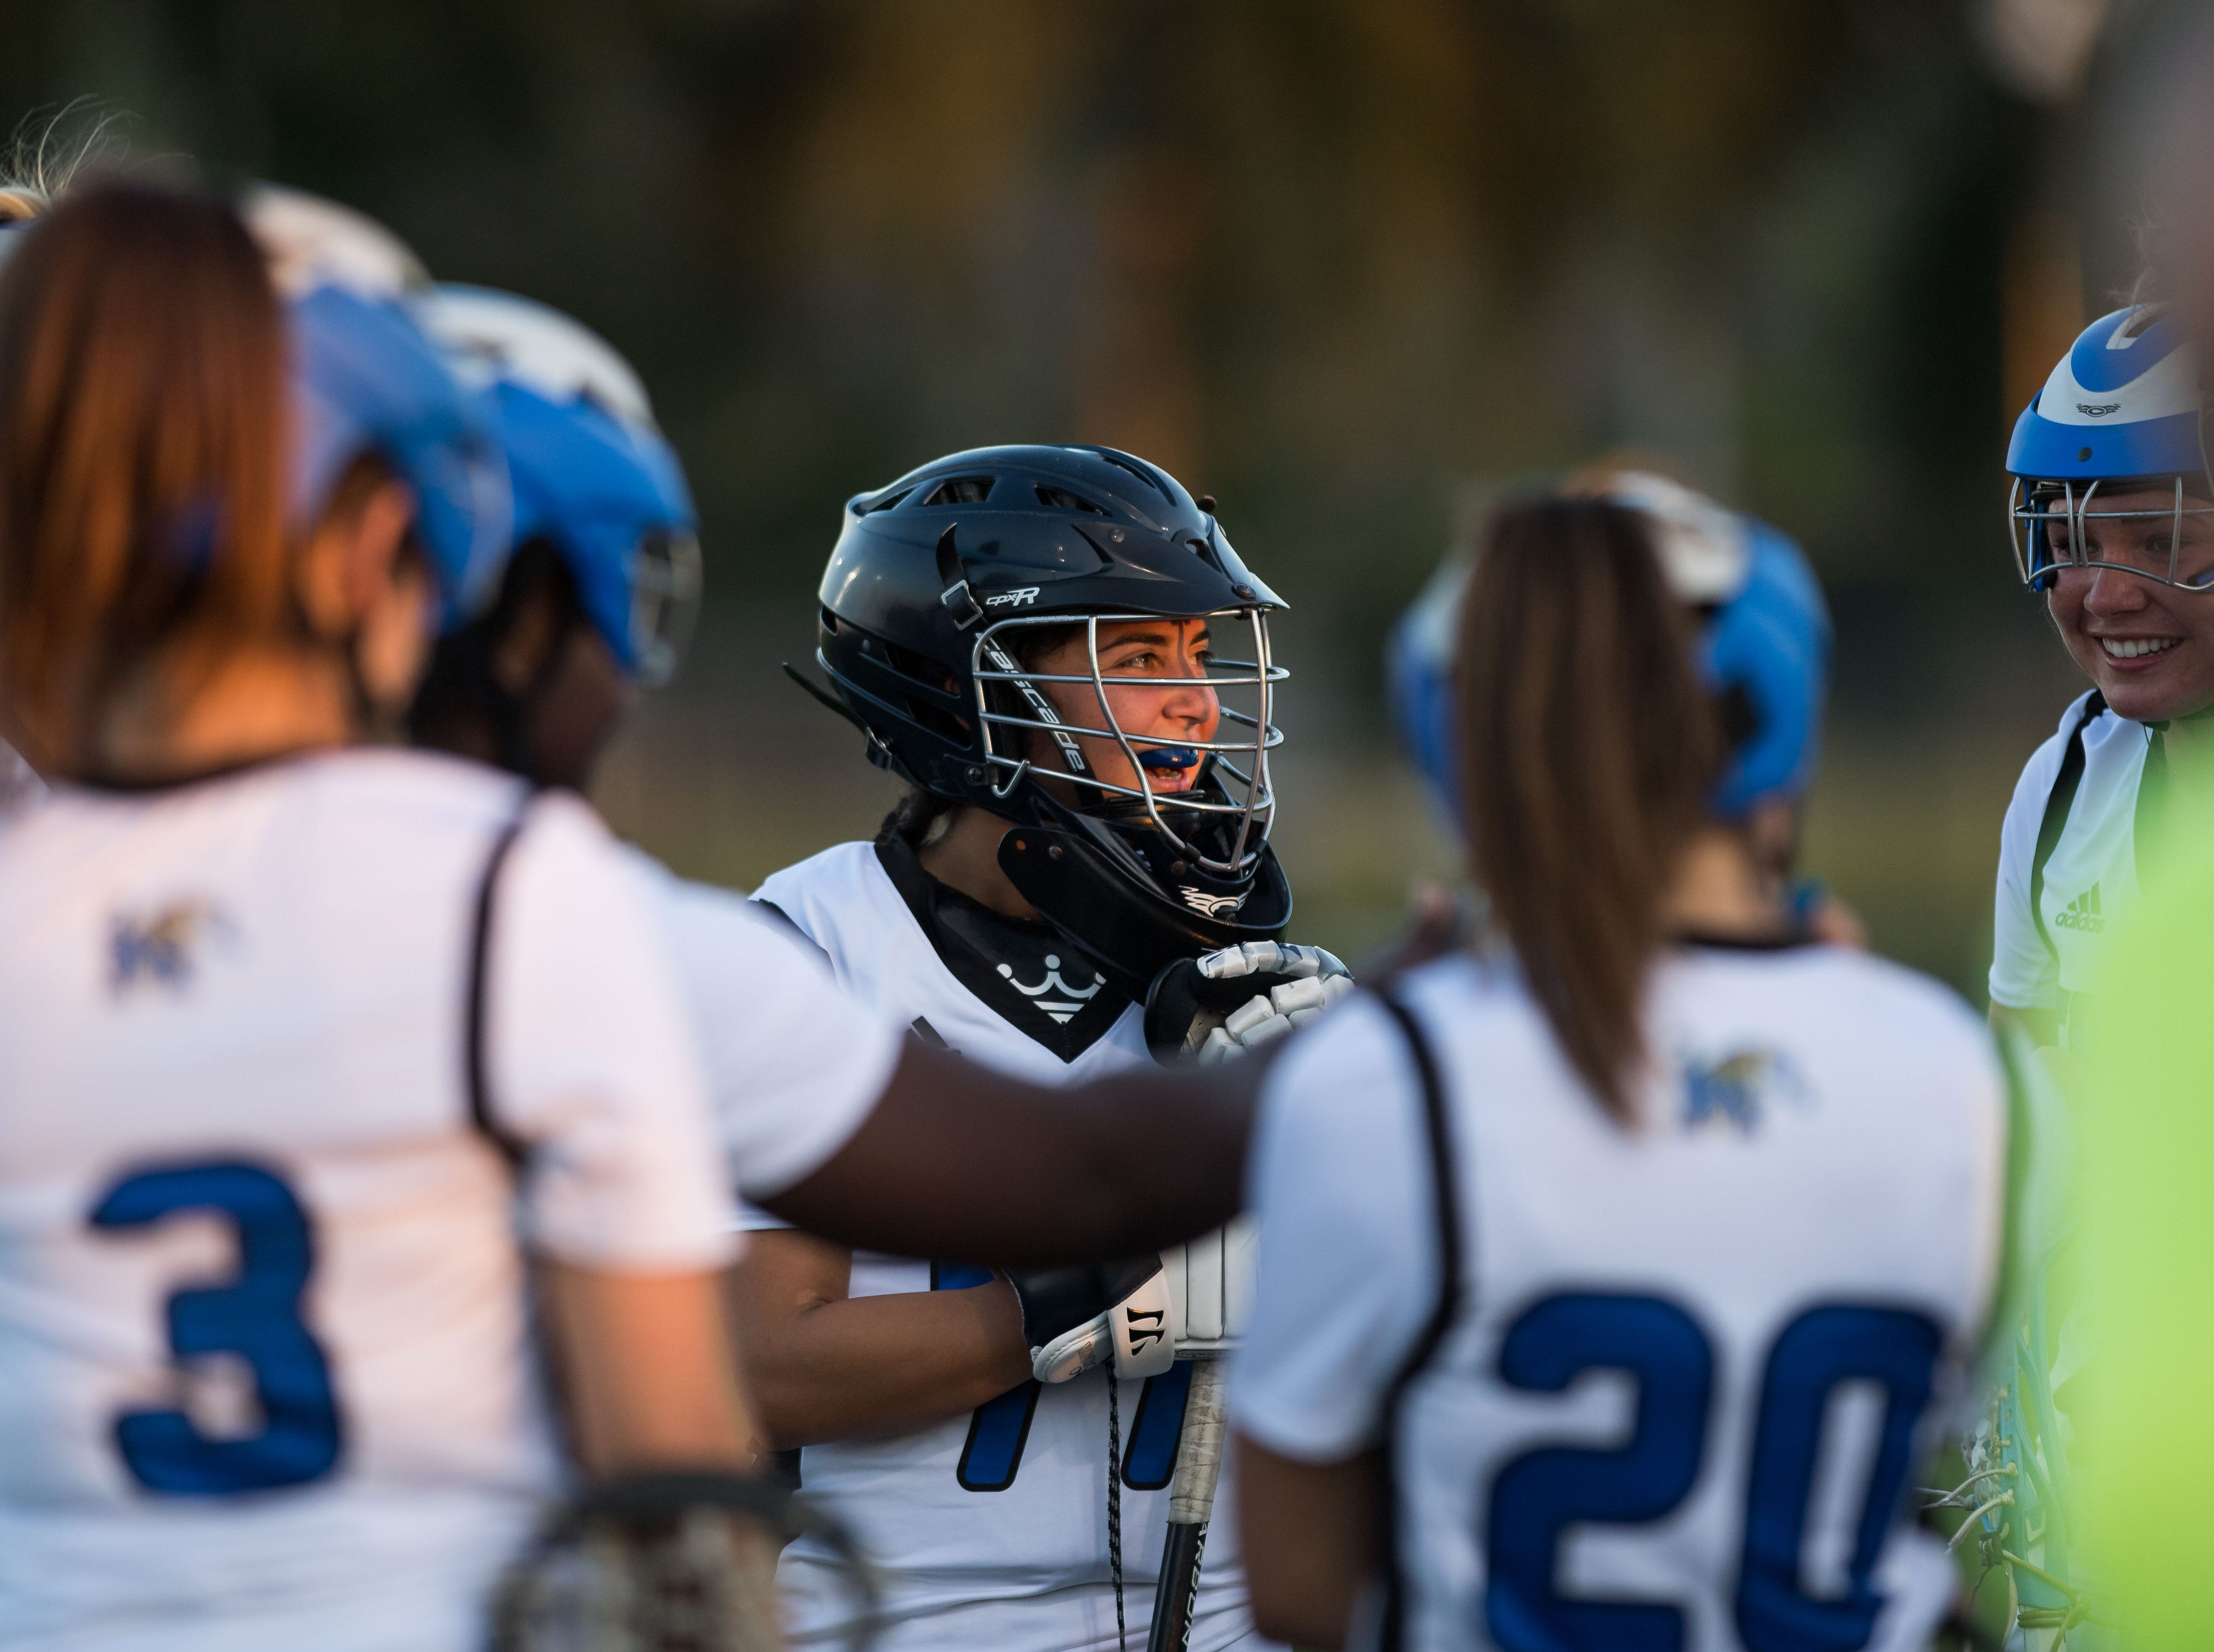 Martin County plays against Jensen Beach during the high school girls lacrosse game Thursday, March 21, 2019, at Martin County High School in Stuart. Martin County beat Jensen Beach 14-12.